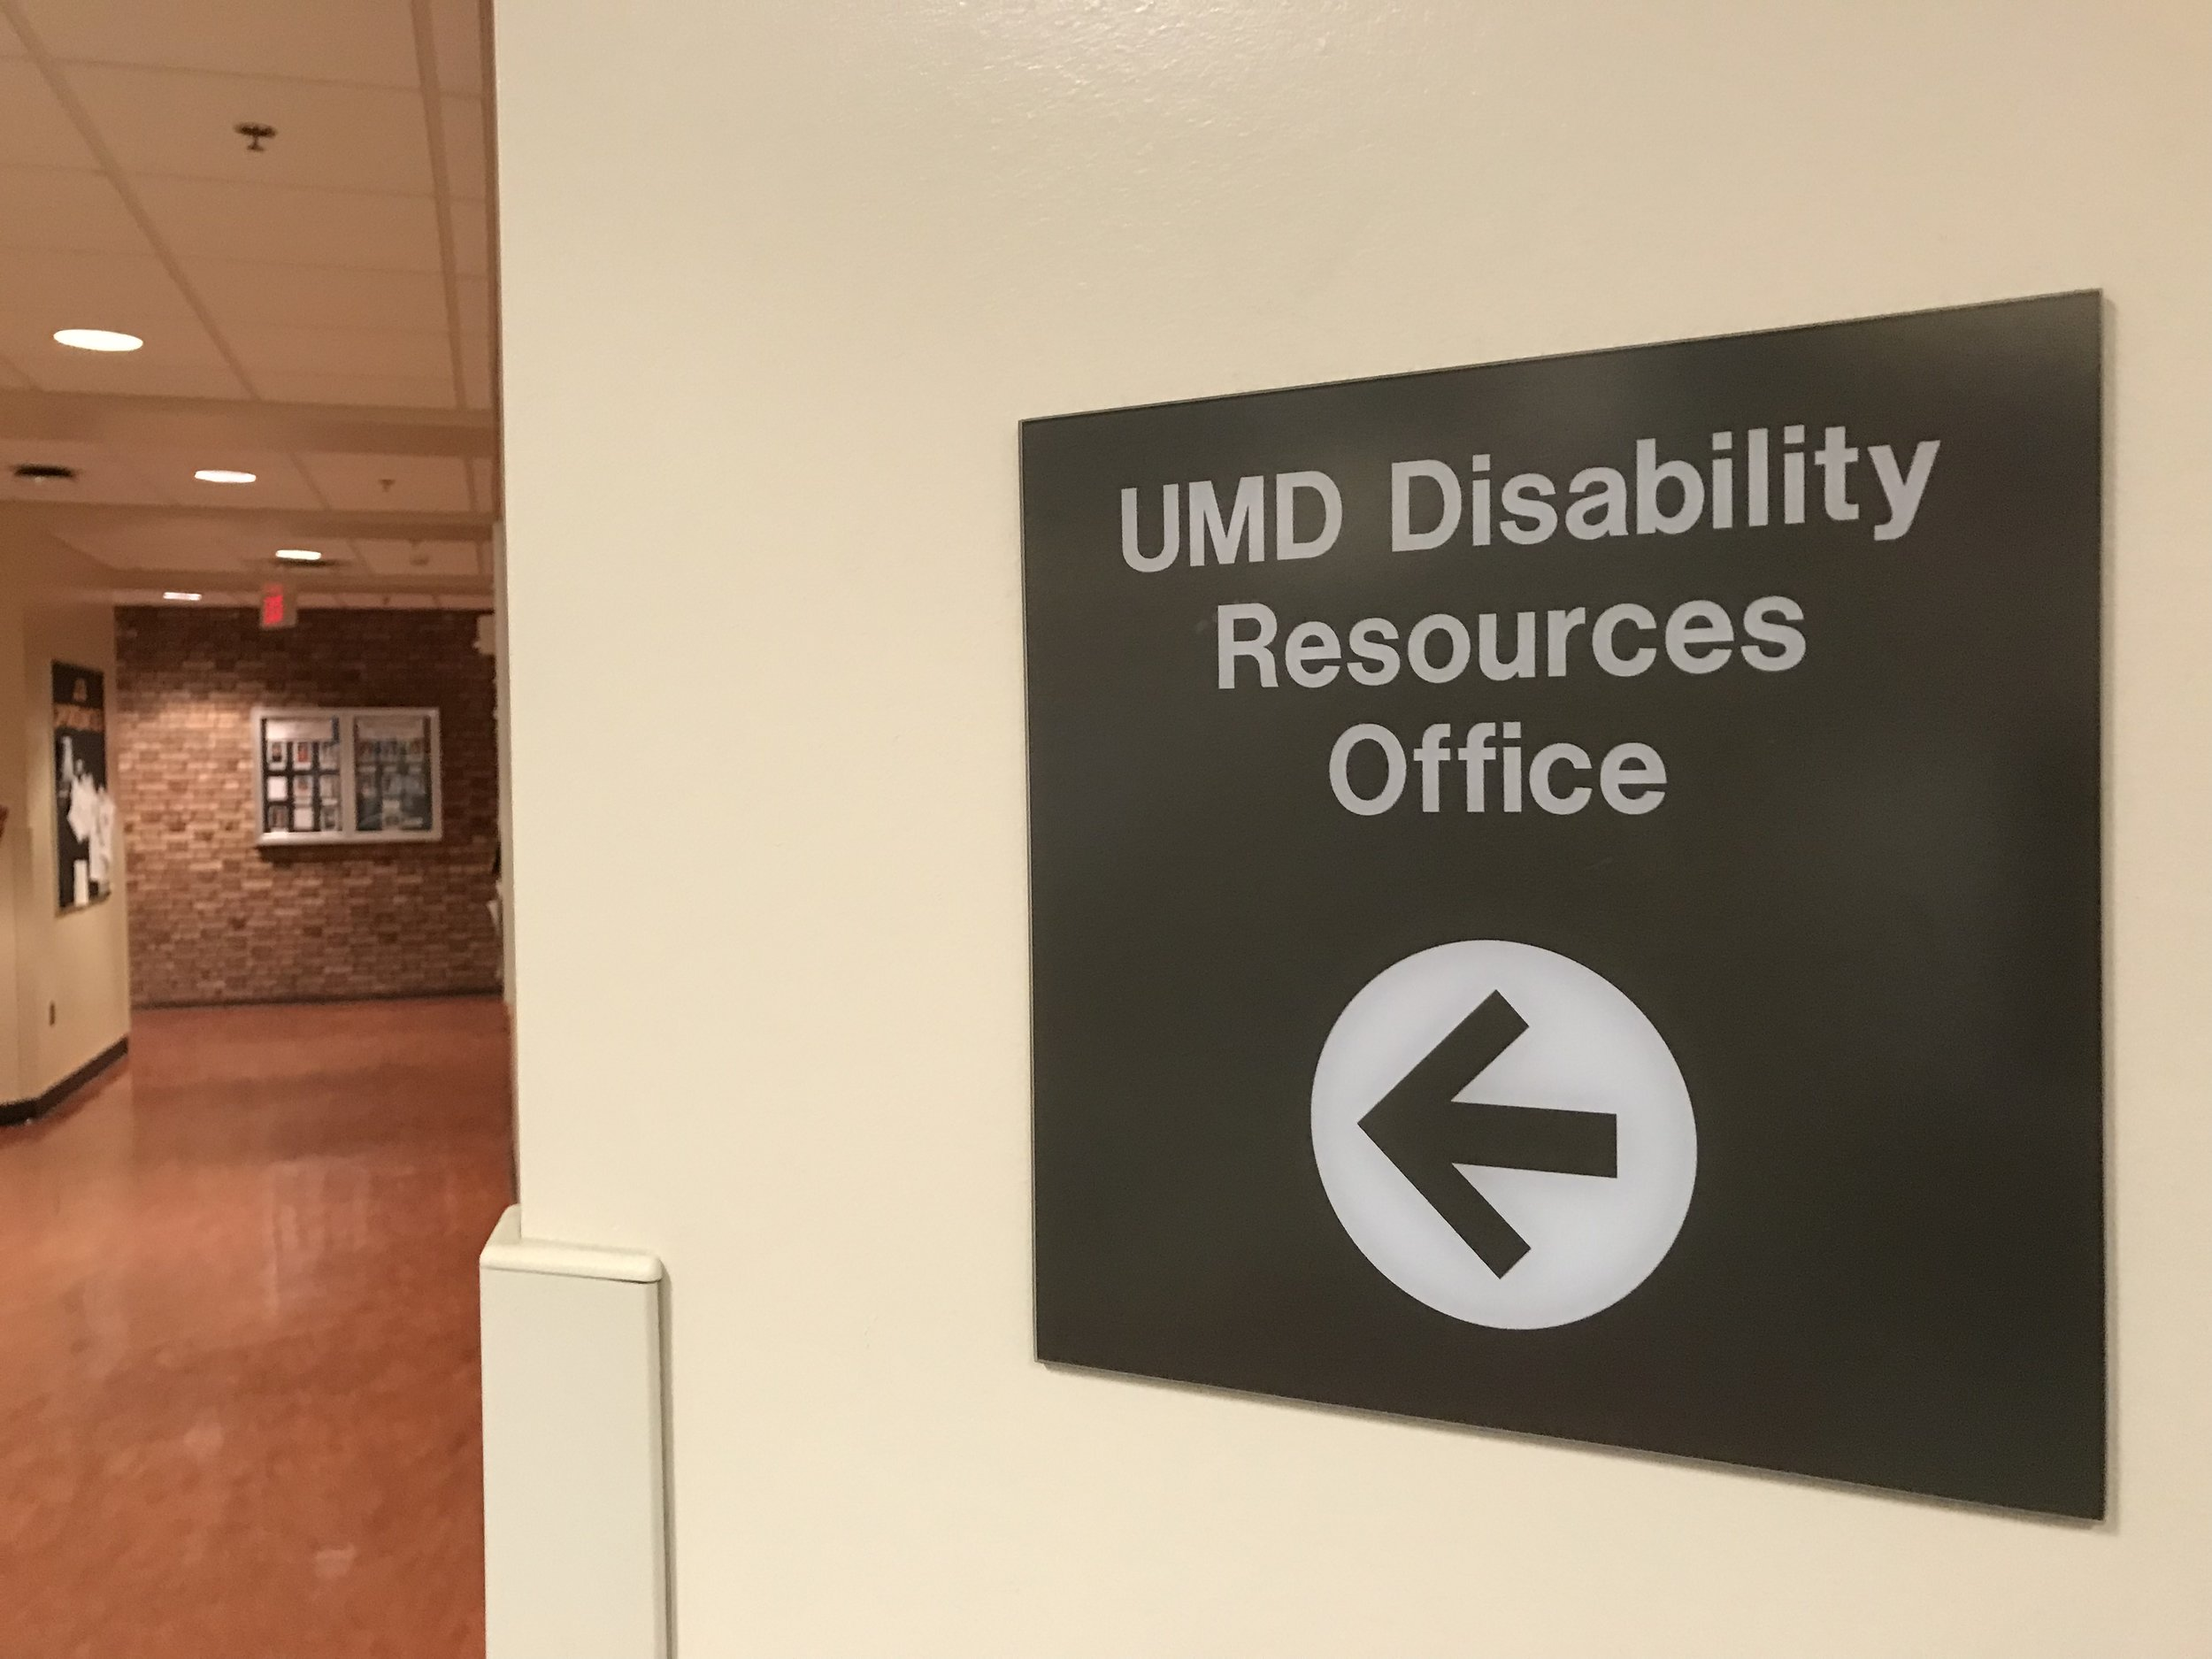 The office is located within the Multicultural Center. Photo courtesy of Cate Tanner